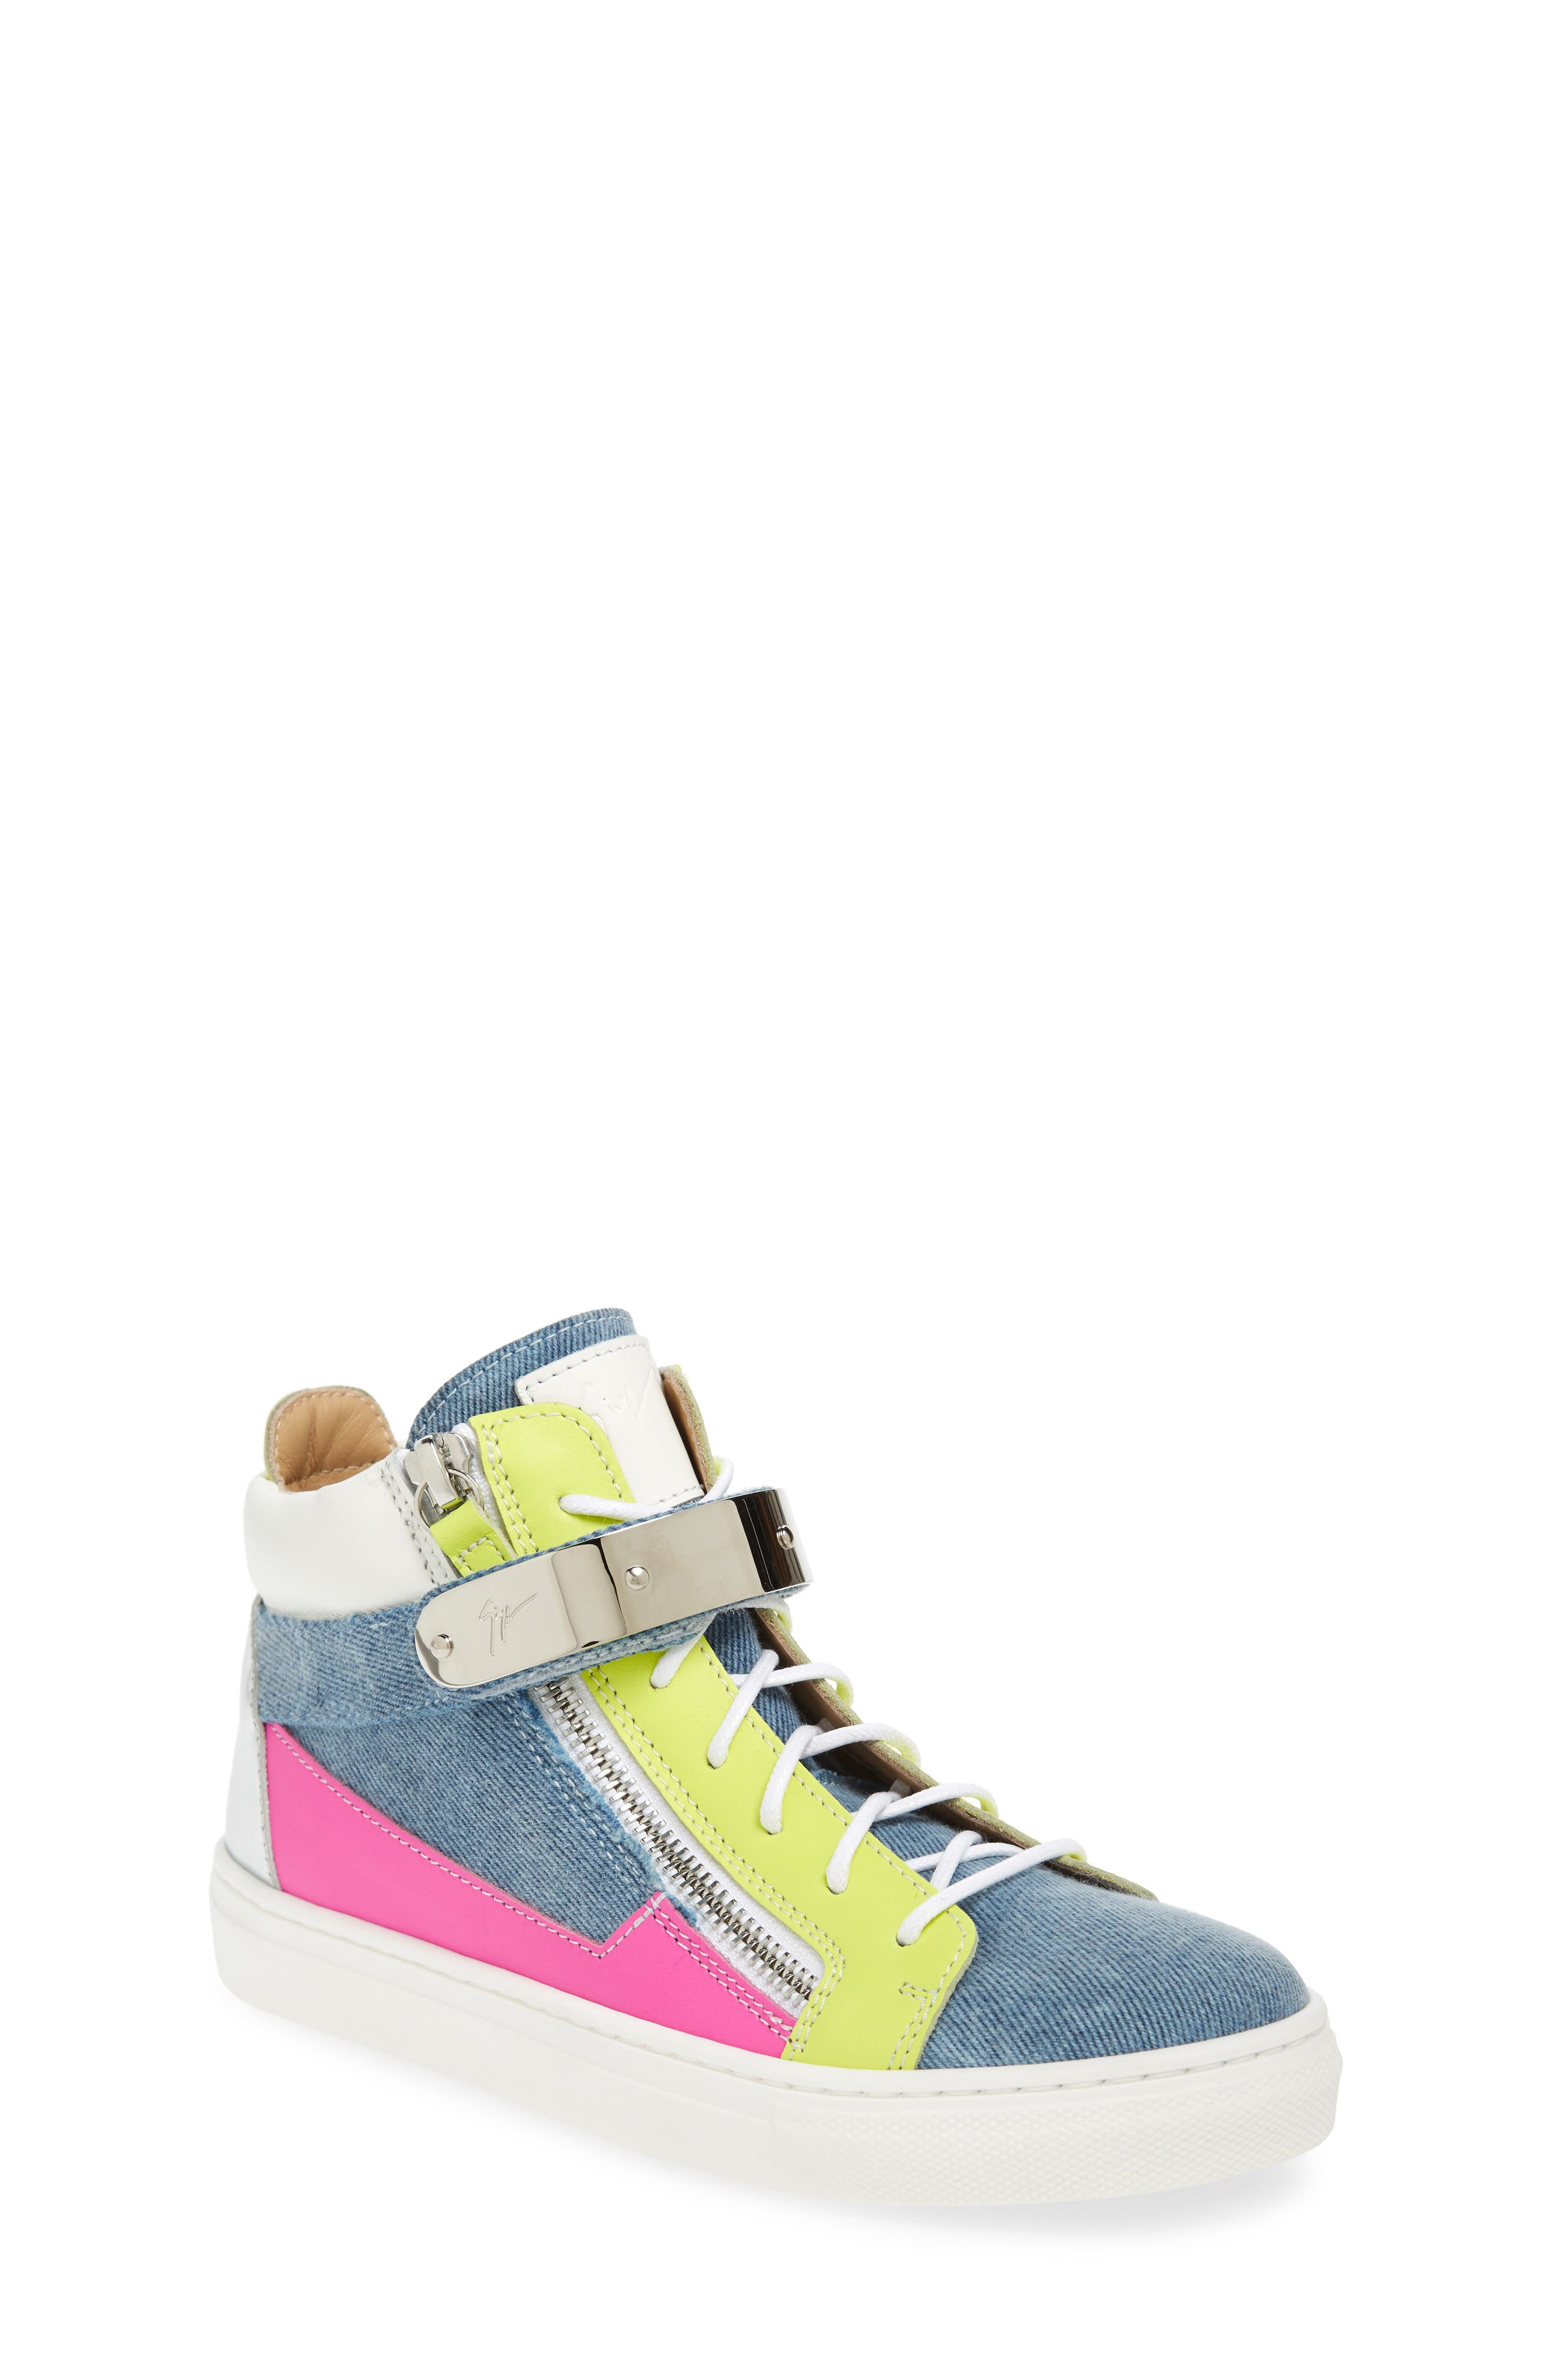 London High Top Sneaker,                         Main,                         color, Multi